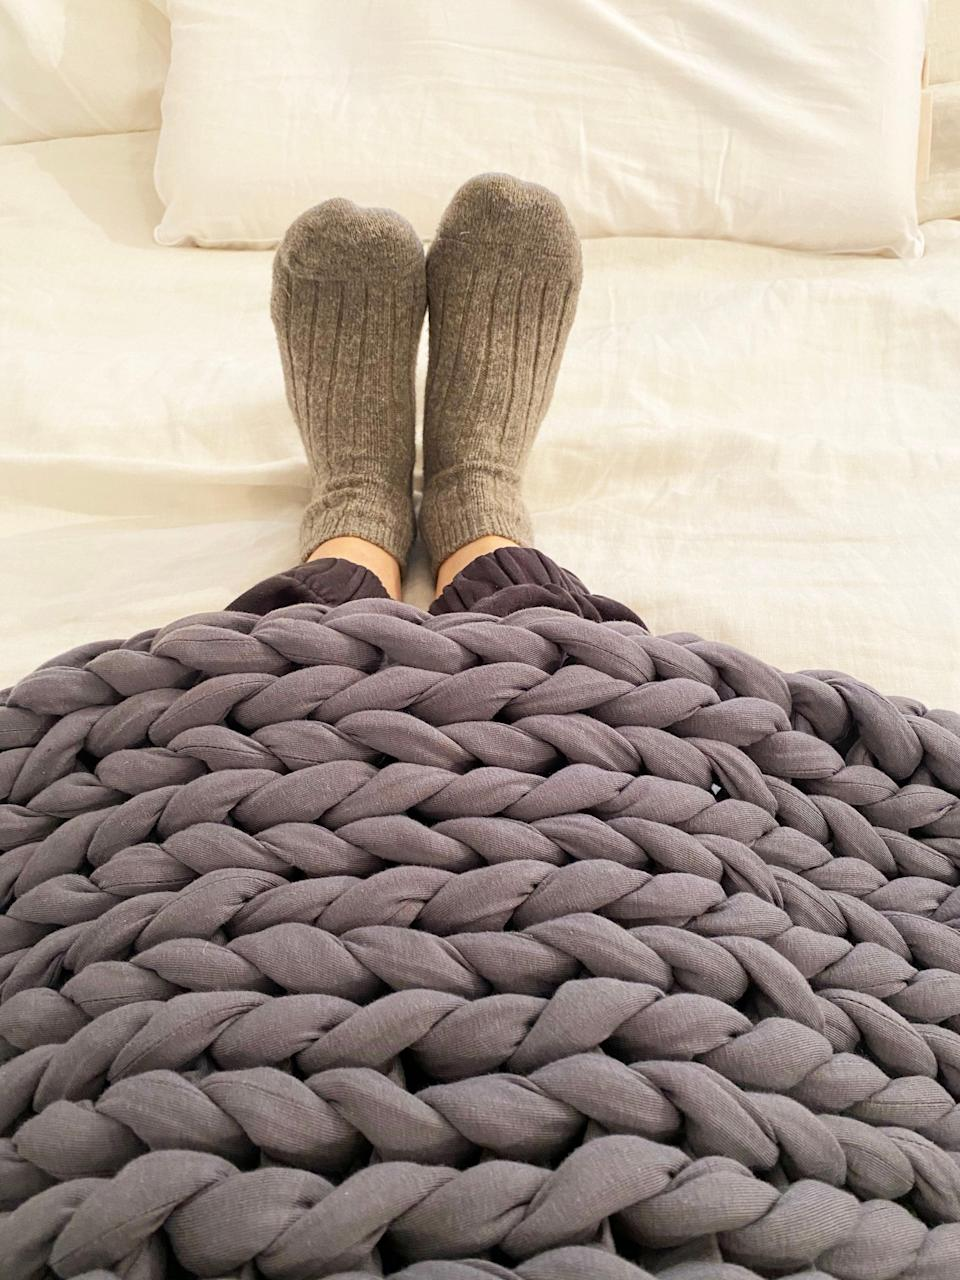 """<strong>What it actually did:</strong> Helped me feel more comfortable and less restless. <br><br><strong>What it didn't do:</strong> Help me fall asleep faster. <br><br><strong>My bedtime story: </strong>I was skeptical about this one, I know so many people have weighted blankets and love them but I've never understood the appeal — until I got my hands on one of my very own. It's kind of a game-changer and feels like a giant hug. I'm a person with 24/7 achy muscles and can never seem to find a comfortable sleeping position. The slight pressure from this 15lb blanket felt soothing and supportive, my body was able to settle much easier, and I was much less restless throughout the night. <br><br><strong>Who it's best for: </strong>Uneasy sleepers who need help settling their bodies to snooze. <br><br><strong>Bearaby</strong> The Napper (15lbs), $, available at <a href=""""https://go.skimresources.com/?id=30283X879131&url=https%3A%2F%2Fbearaby.com%2Fproducts%2Fthe-napper"""" rel=""""nofollow noopener"""" target=""""_blank"""" data-ylk=""""slk:Bearaby"""" class=""""link rapid-noclick-resp"""">Bearaby</a>"""